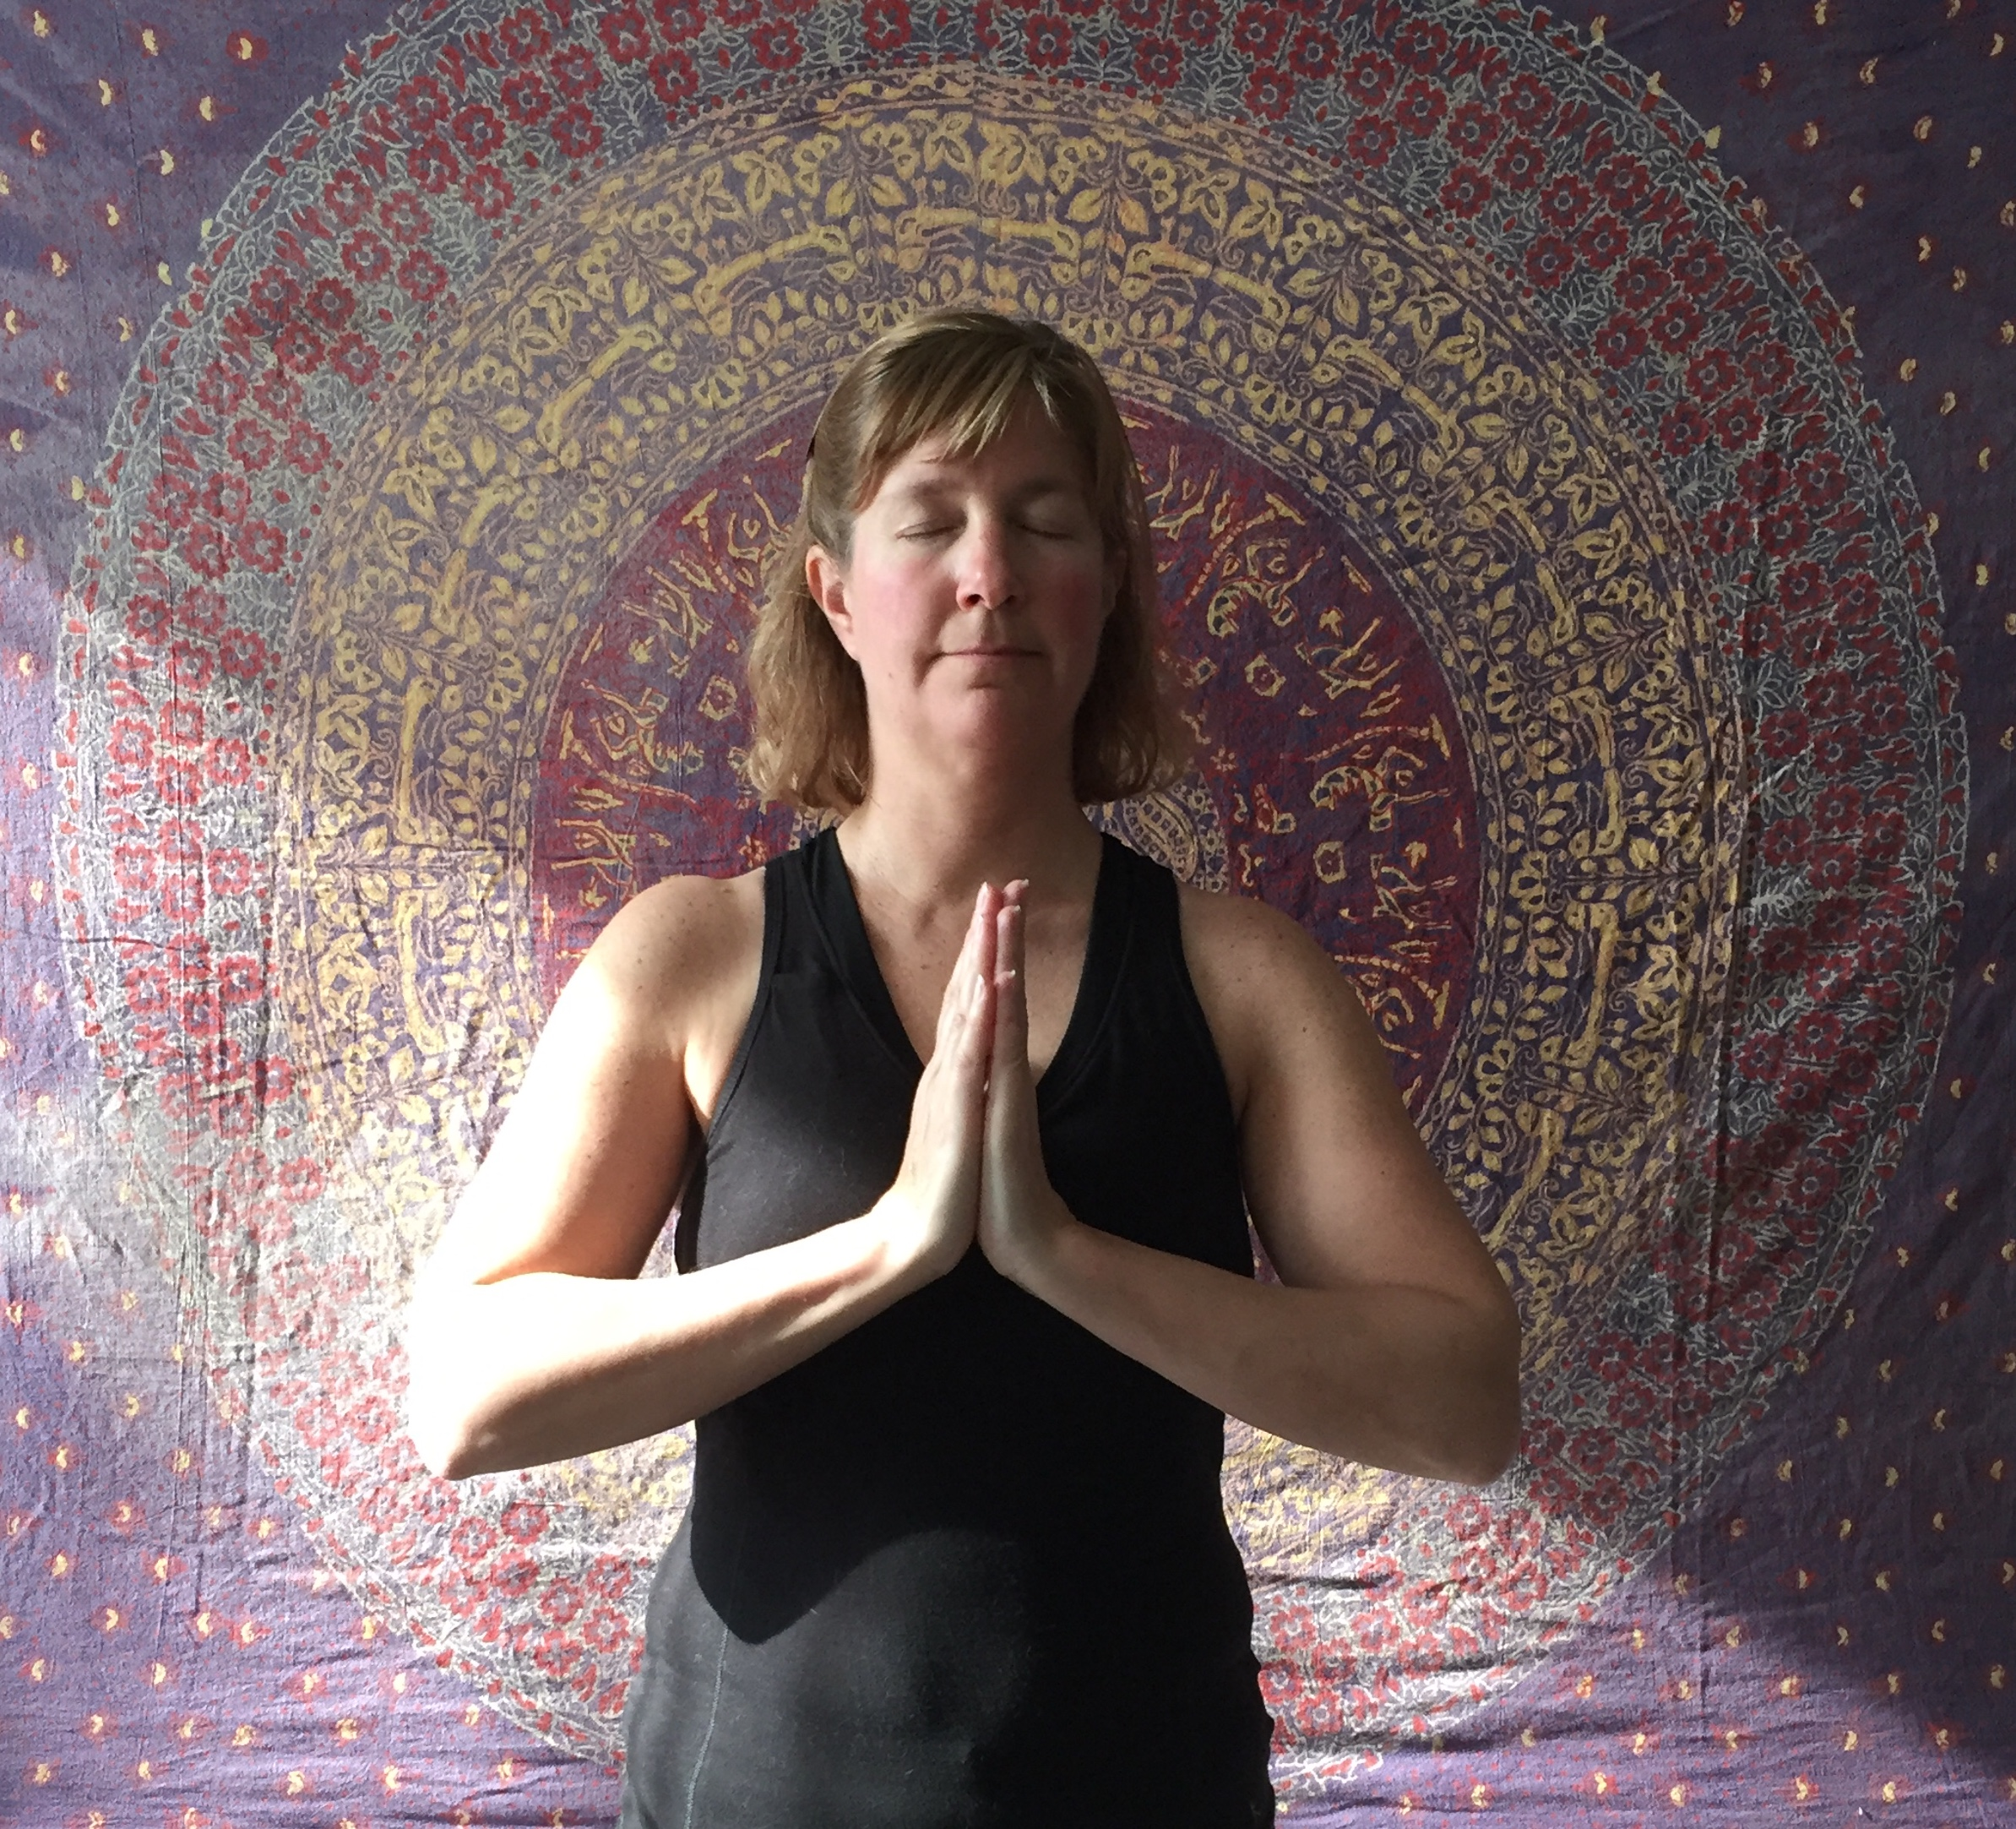 lora - Lora has been a dedicated yoga student for over 10 years, a certified yoga teacher since 2018, and recently received her RYT 500 hour certification. She specializes in teaching both yin and yang styles of yoga, including yoga nidra, to help her students find balance on their mats. Her classes always focus on whole-body communication and activation, a sense of presence, and reverence for the body-mind-spirit connection.